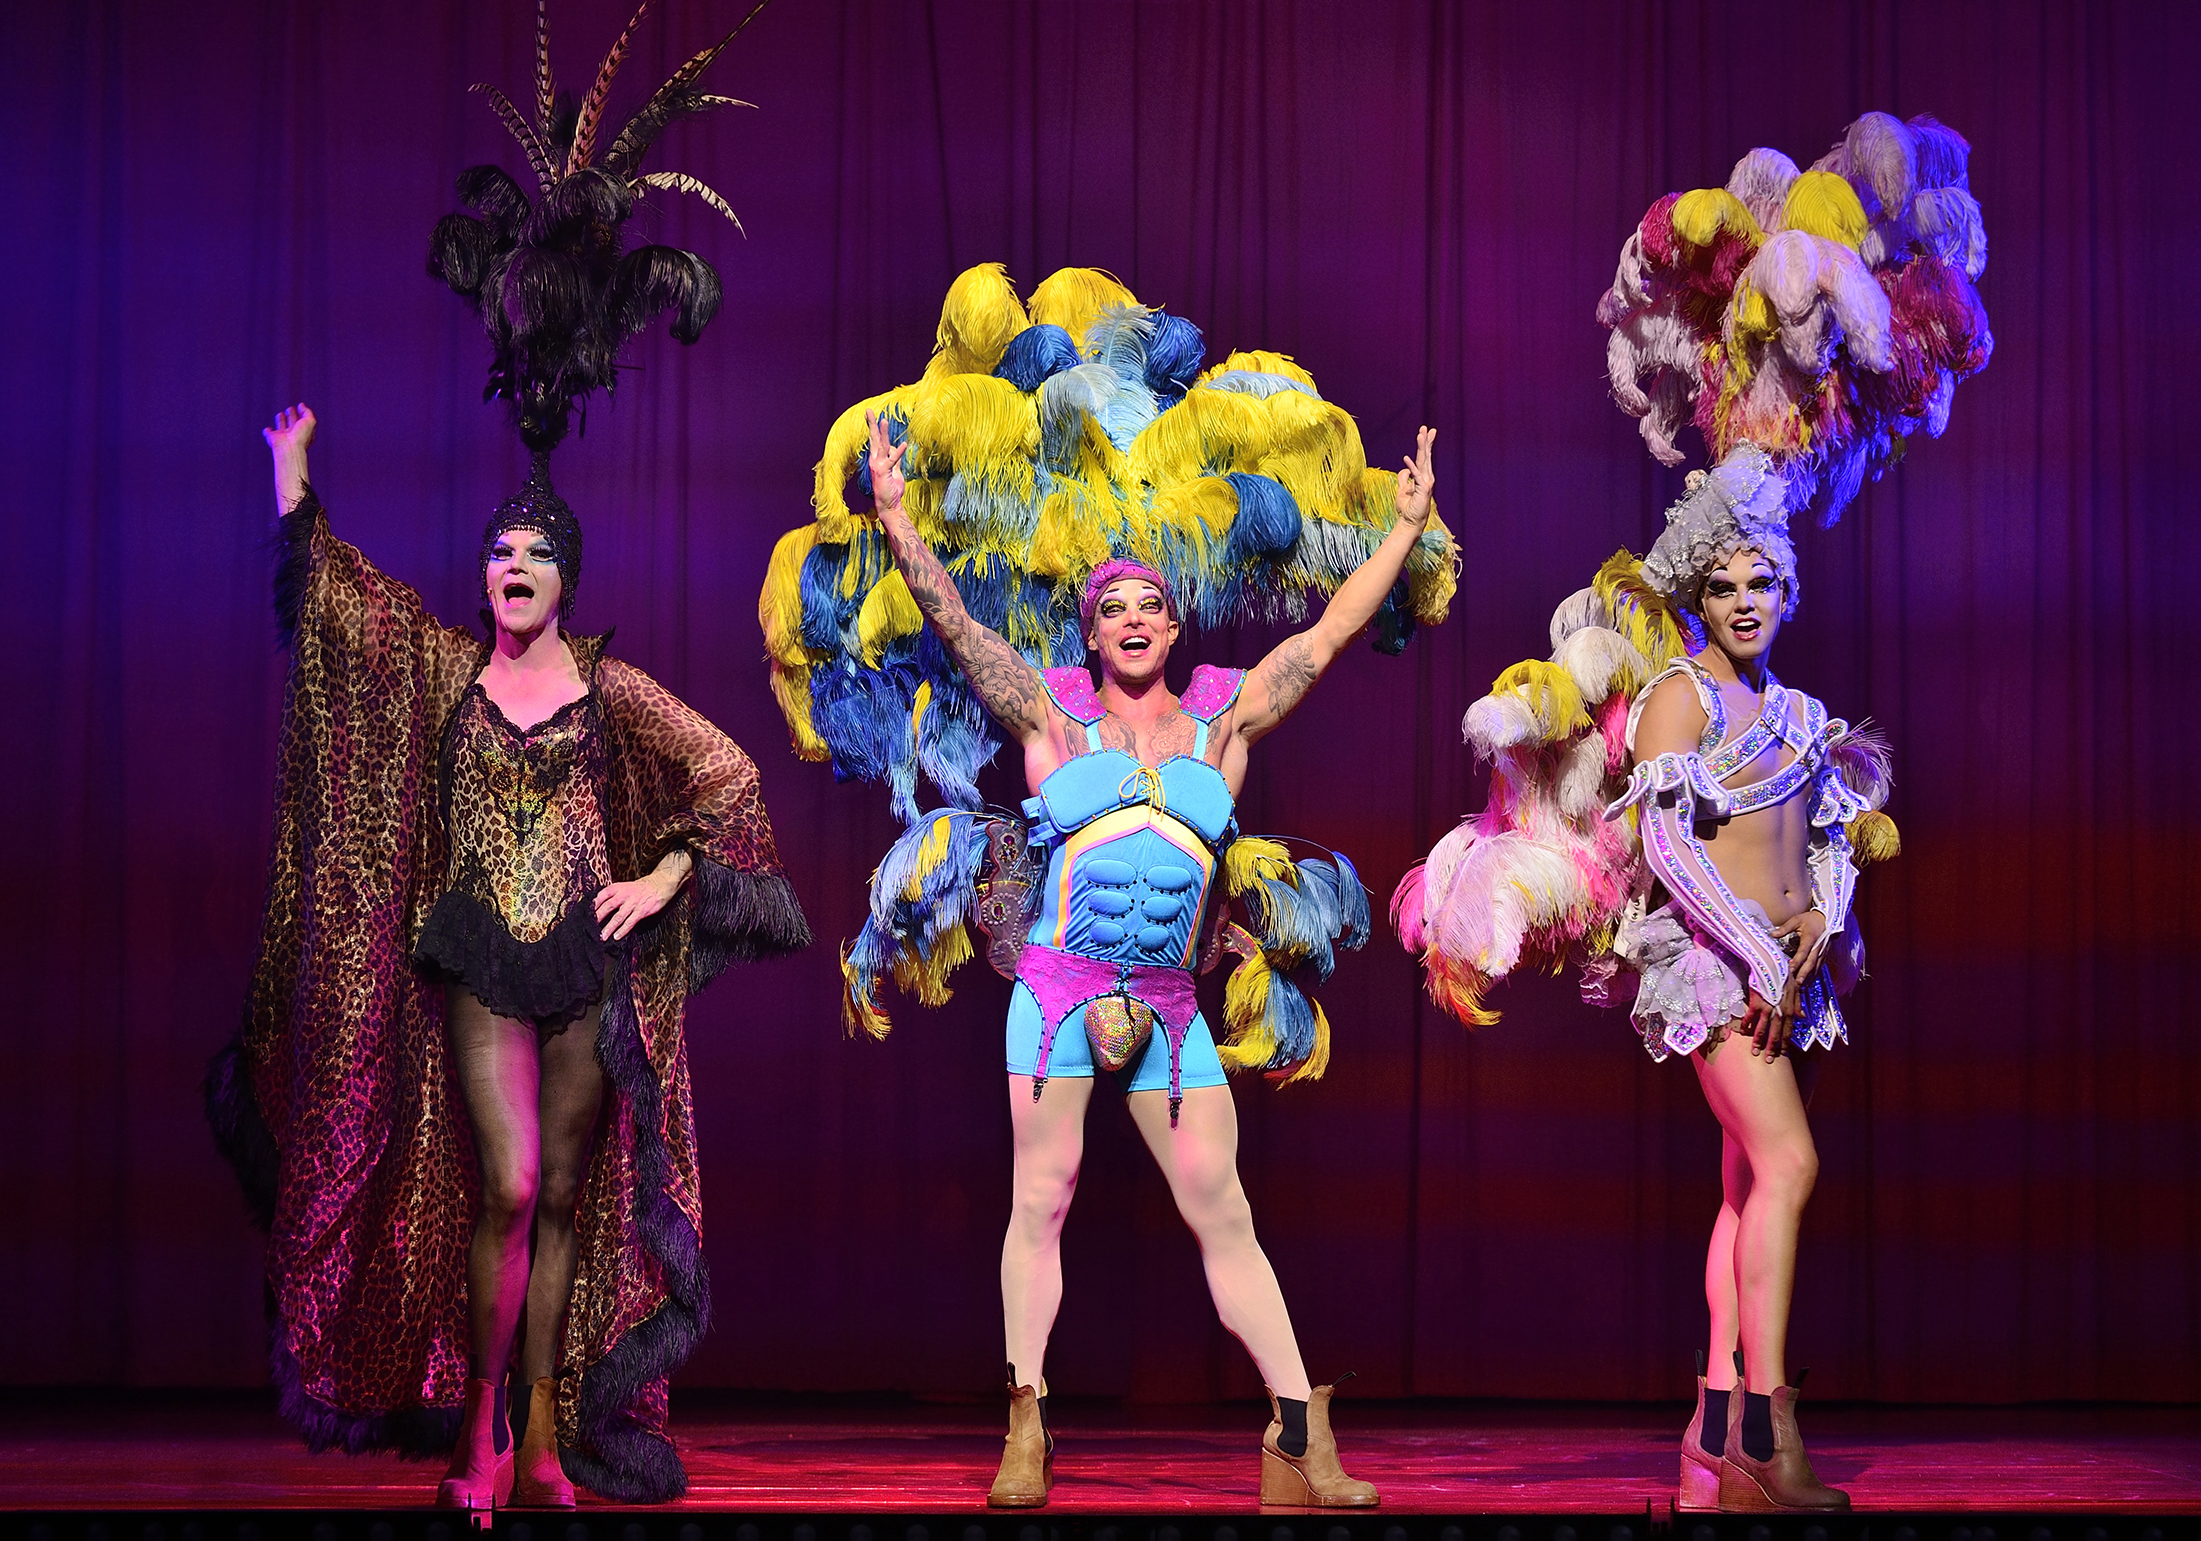 priscilla queen of the desert Priscilla queen of the desert july 11 – august 5, 2018 buy tickets online now based on the oscar-winning film the adventures of priscilla queen of the desert, this tony award winning musical follows the adventures of a trio of drag queens who journey across the australian outback.